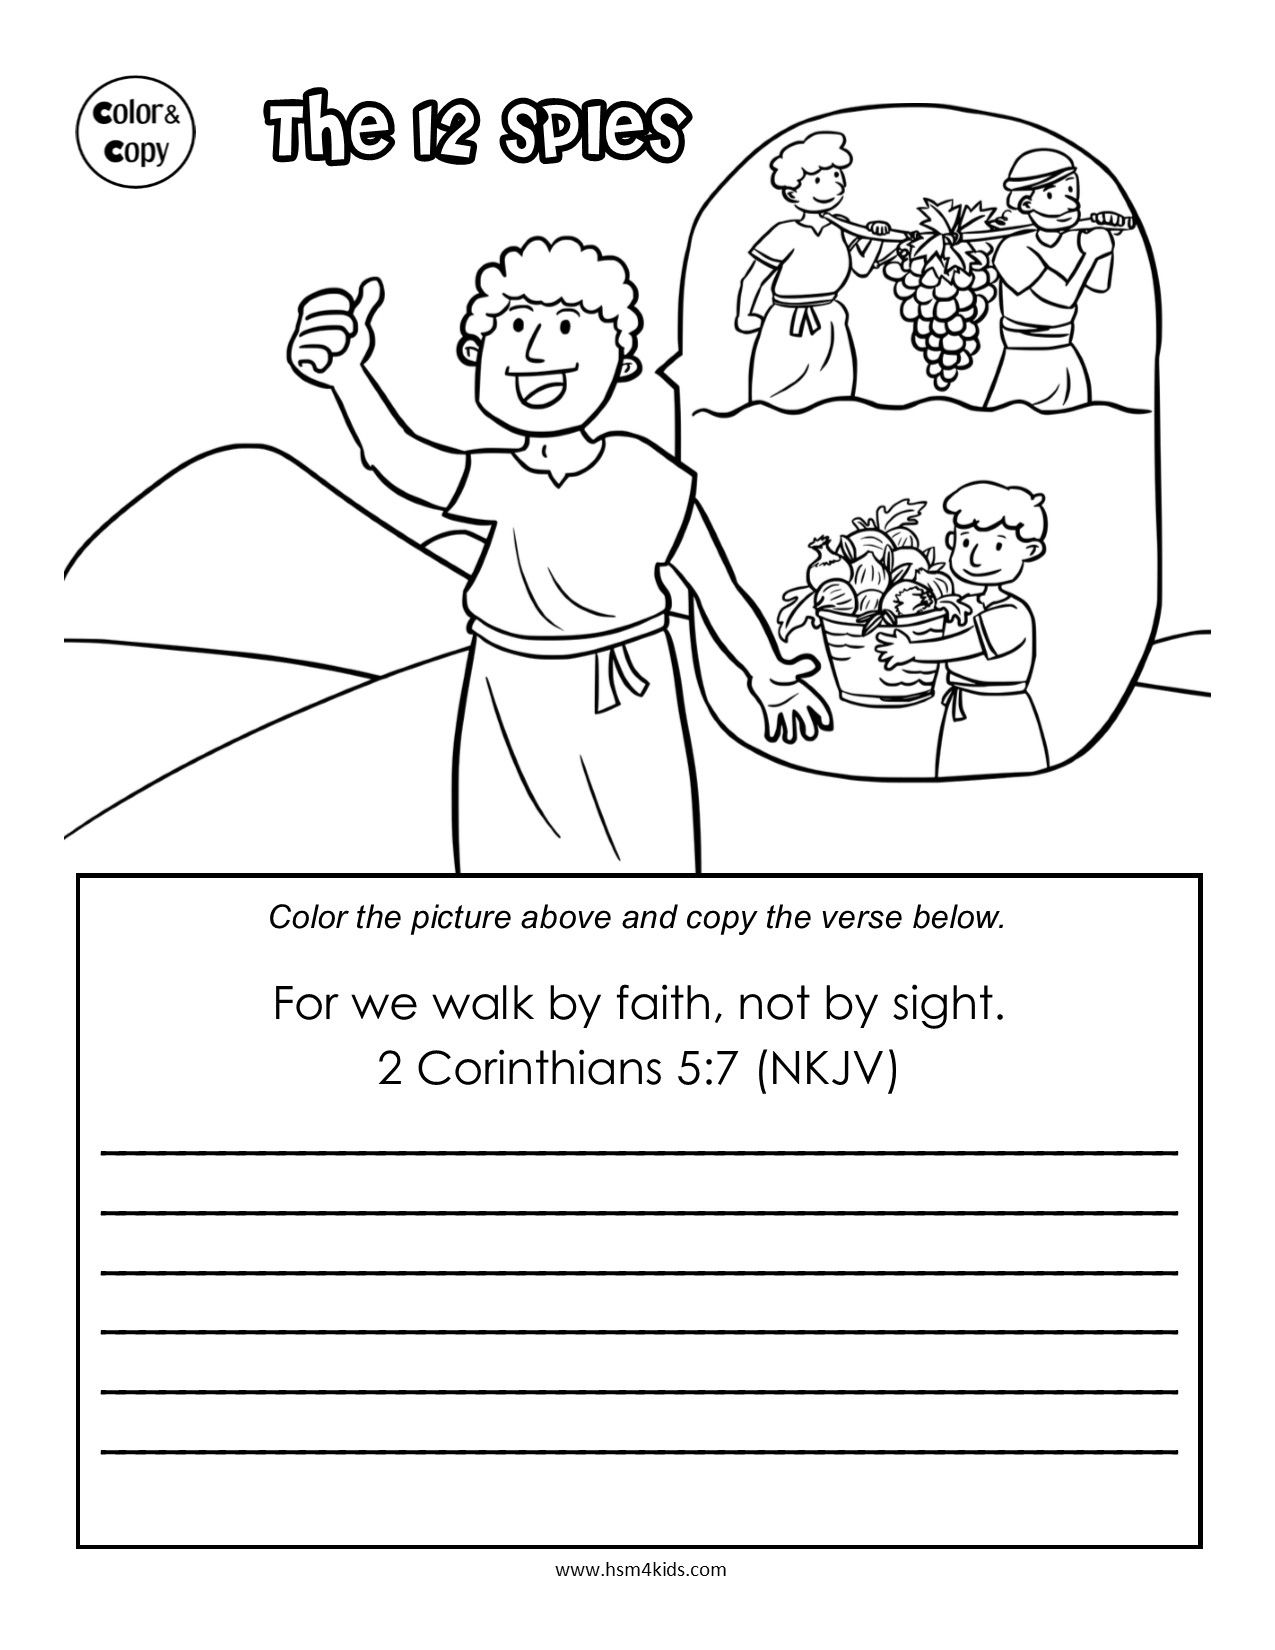 Free Color And Copy Bible Worksheet Color The Worksheet And Copy The Bible Verse Free Bible Printables Bible Printables Bible Activities For Kids